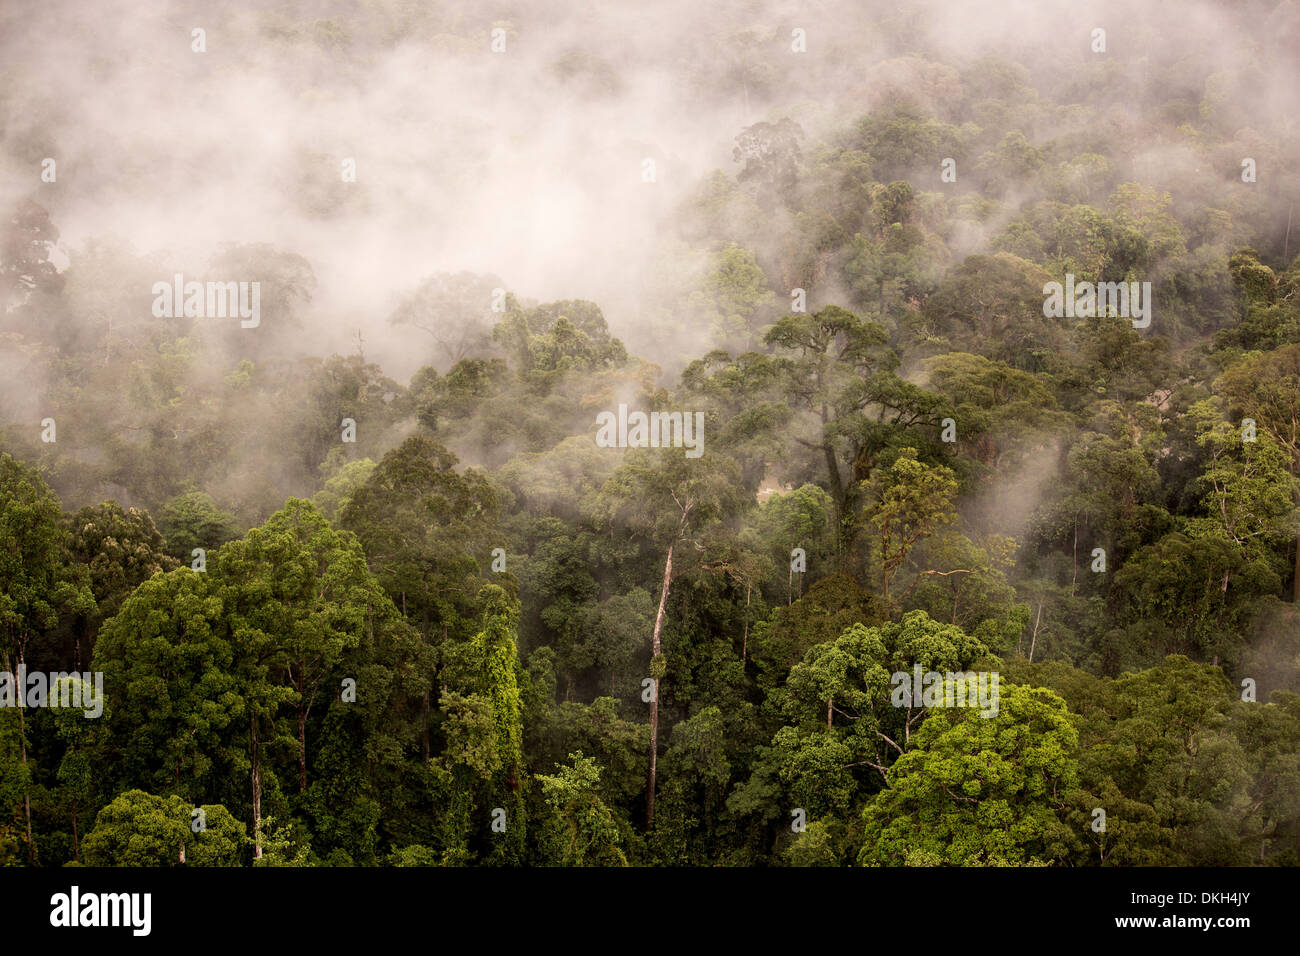 Rain mist rising from the forest canopy in Danum Valley, Sabah, Malaysian Borneo, Malaysia, Southeast Asia, Asia - Stock Image